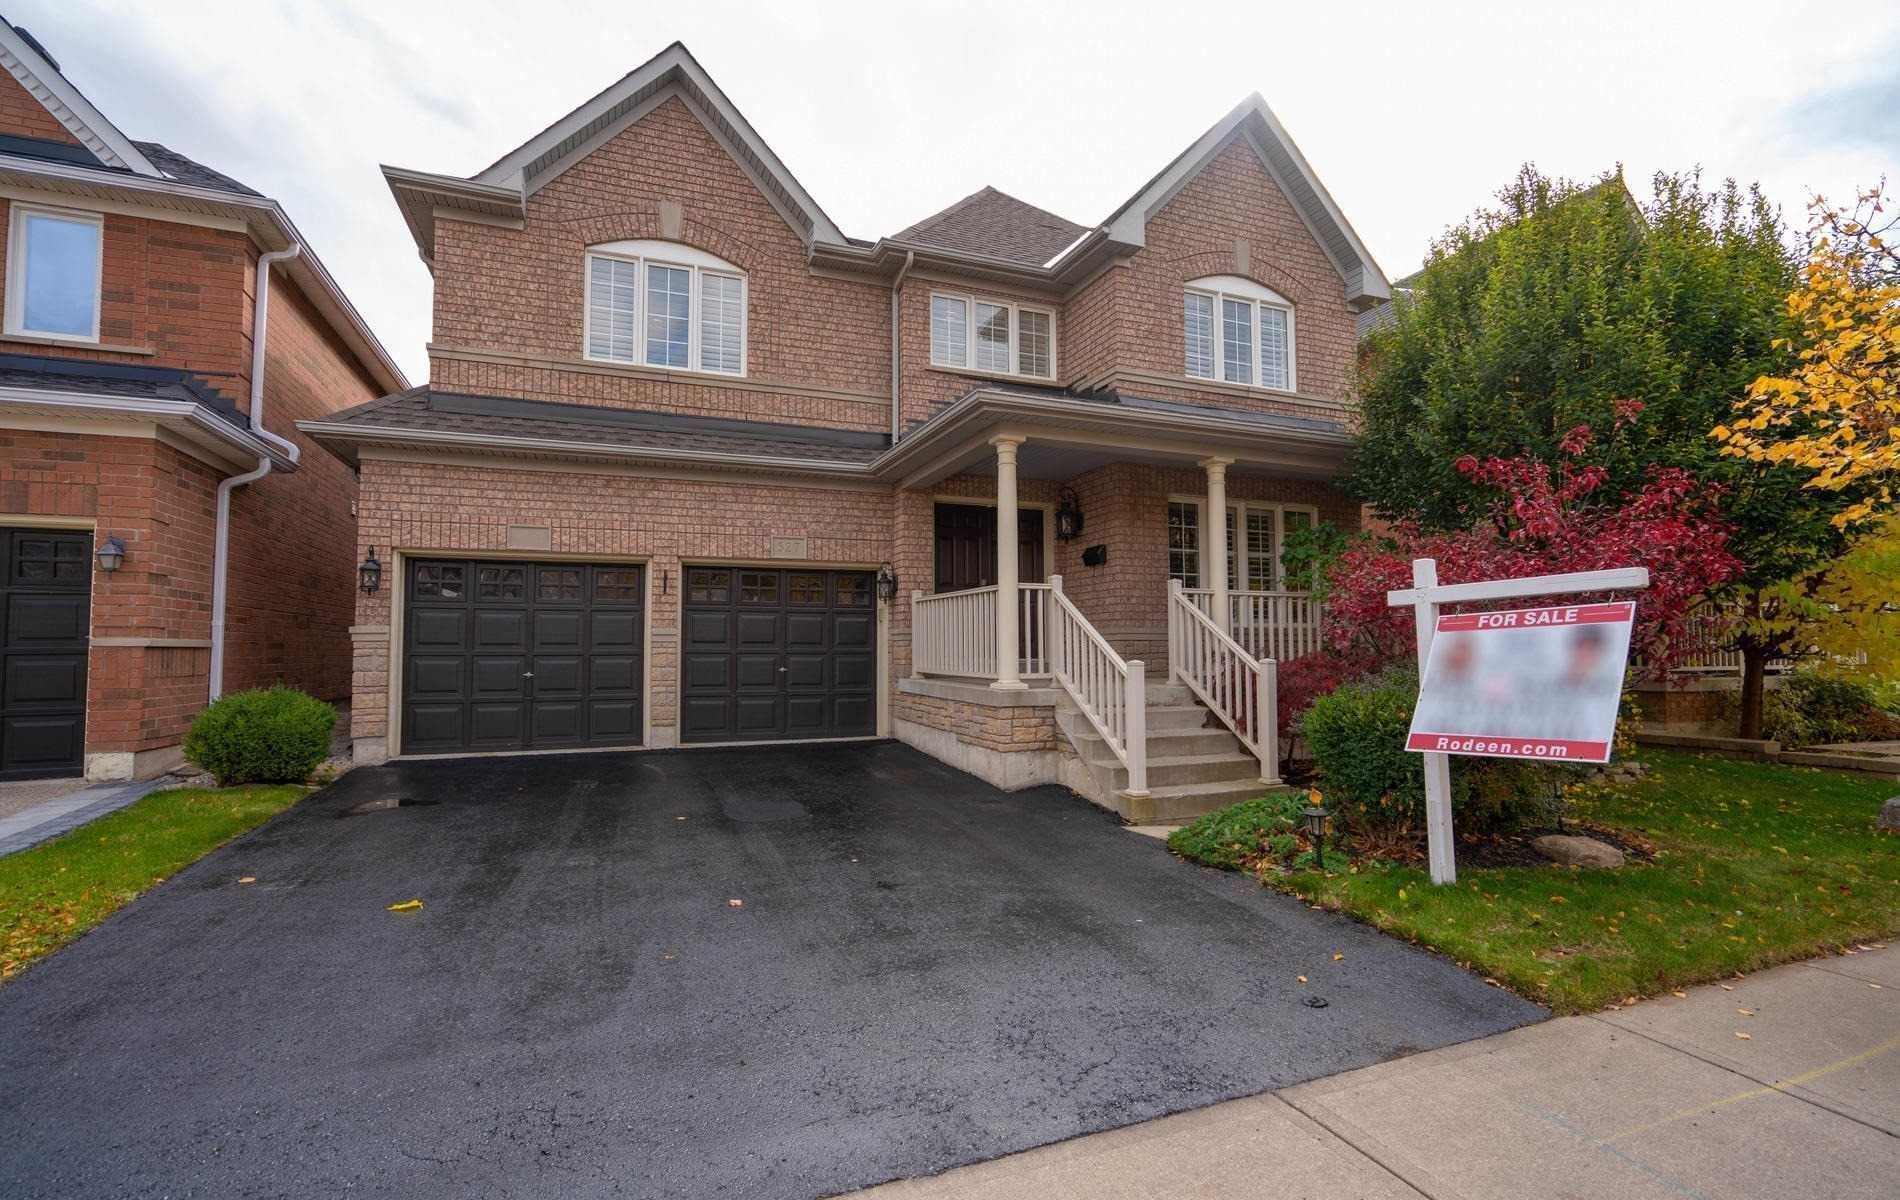 Main Photo: 527 Hartley Boulevard in Milton: Clarke House (2-Storey) for sale : MLS®# W4617262